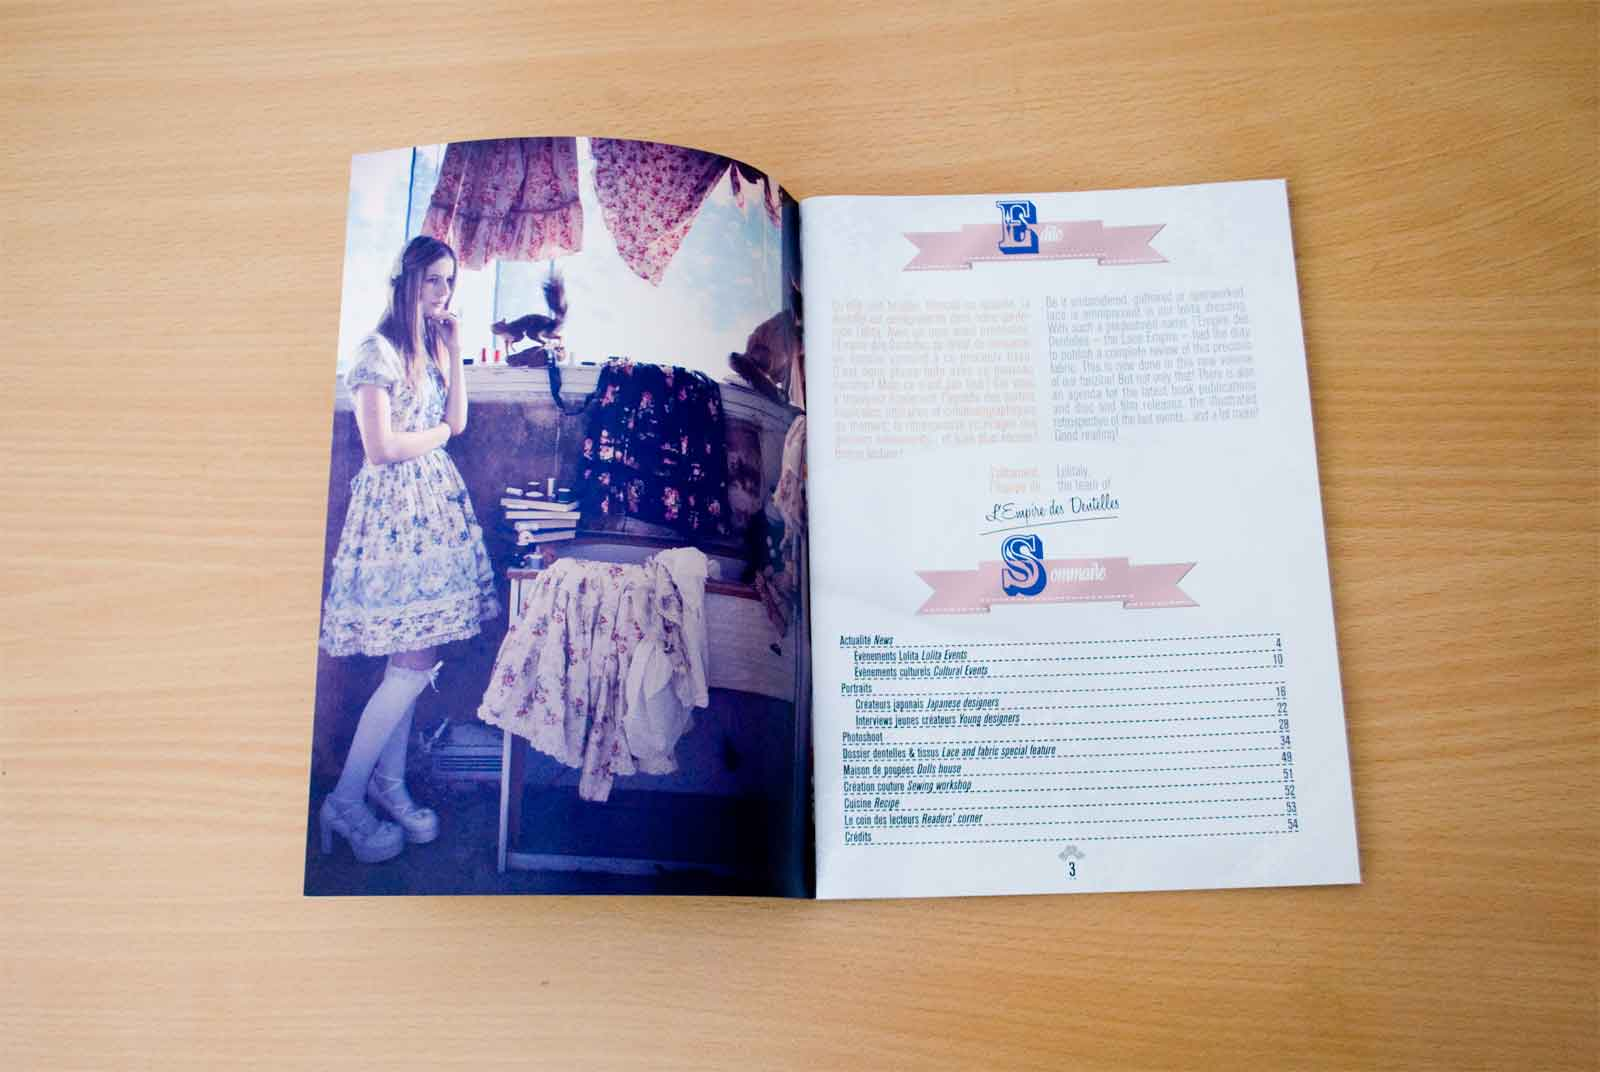 Slide 2/6 of my work on the lolita fashion publication